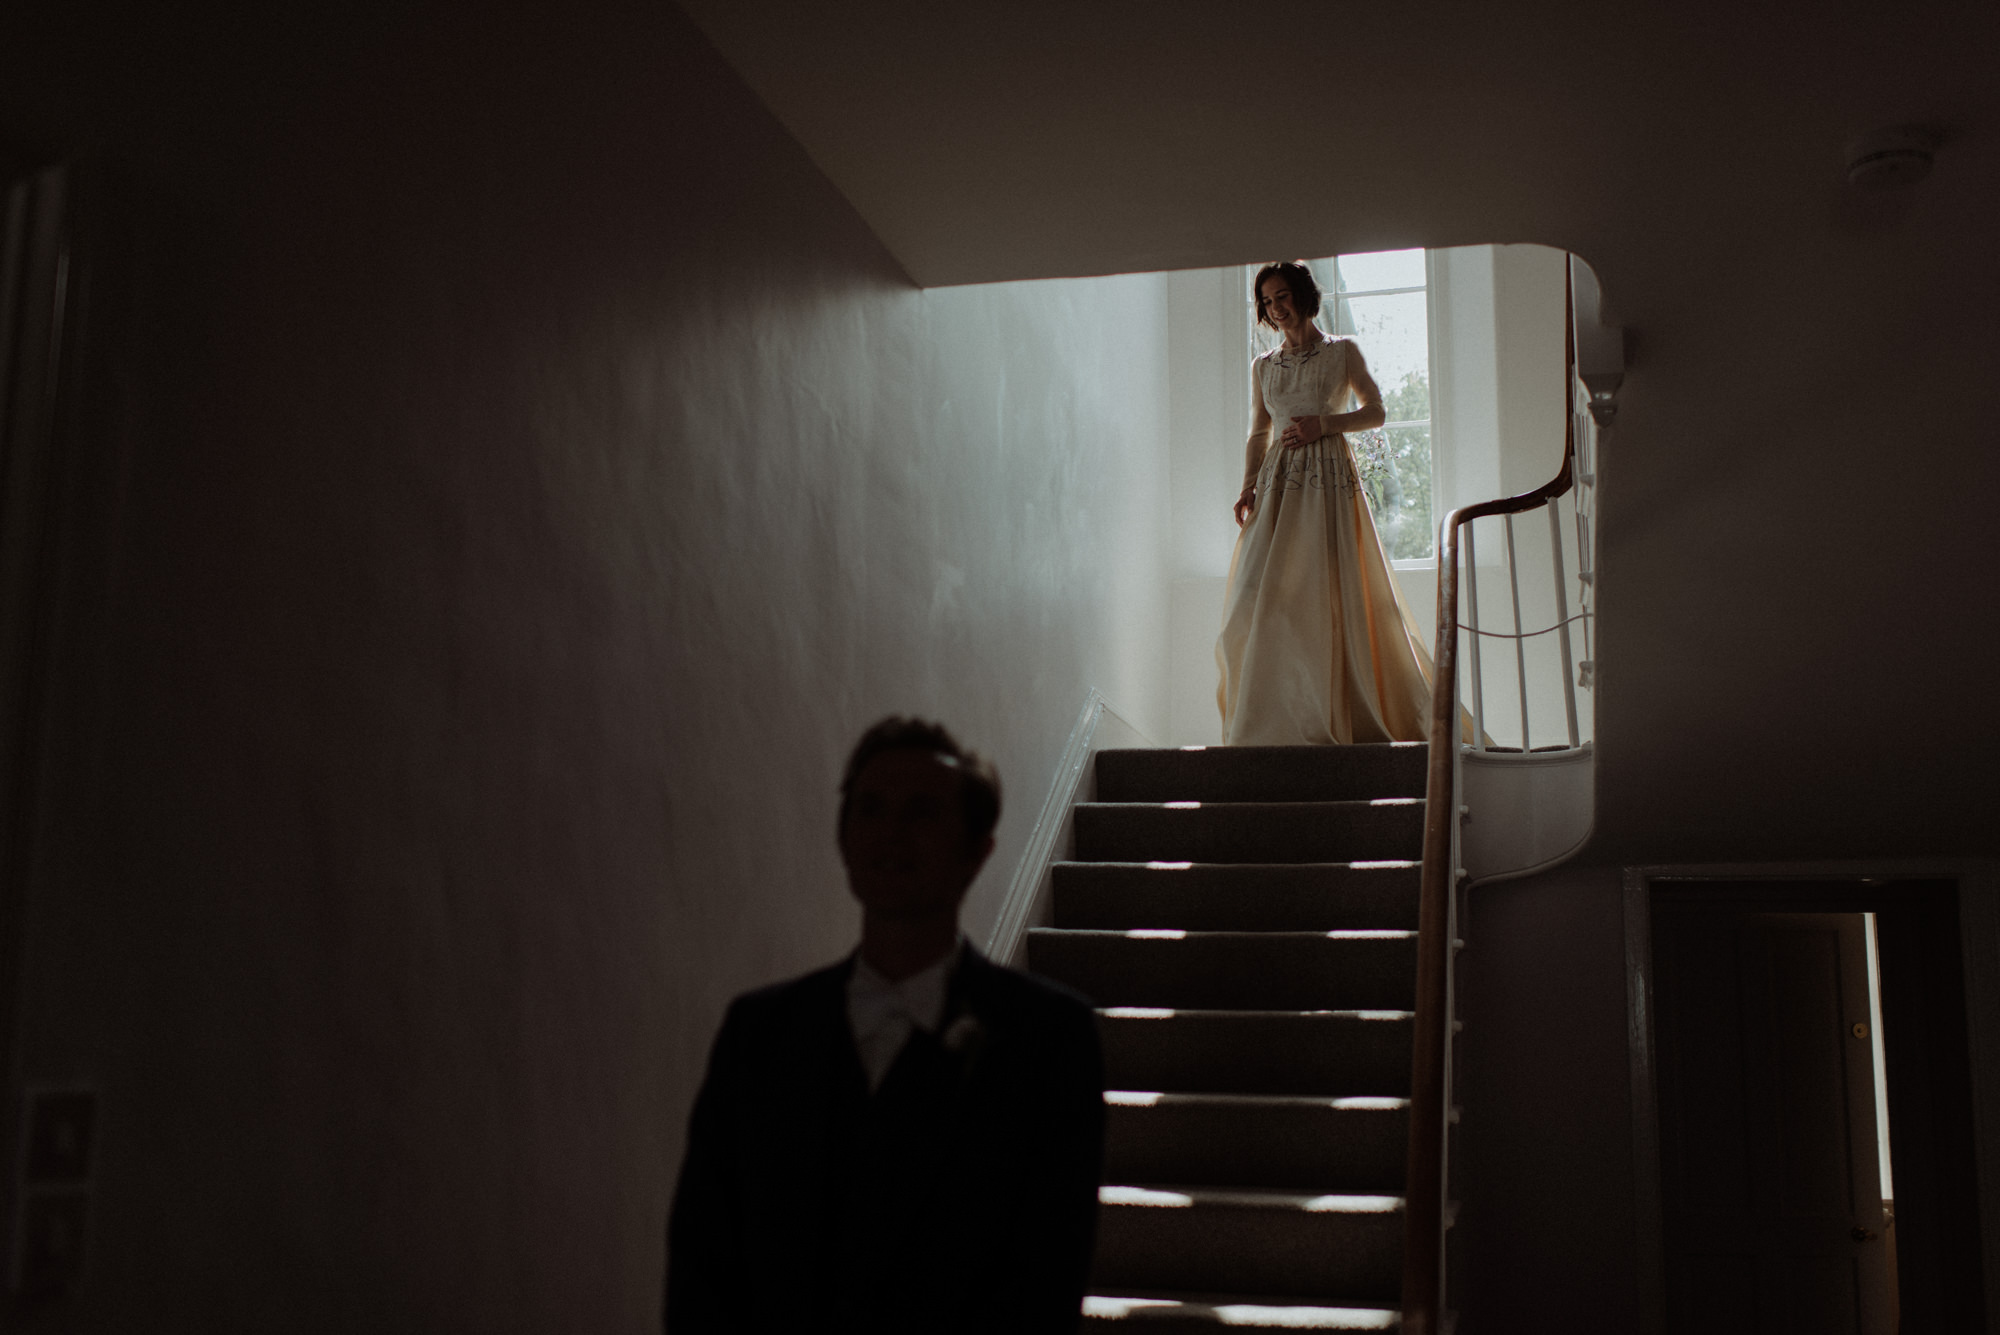 first-look-bride-comes-dwon-stairs-to-groom-worlds-best-wedding-photos-the-kitcheners-scotland-wedding-photographers